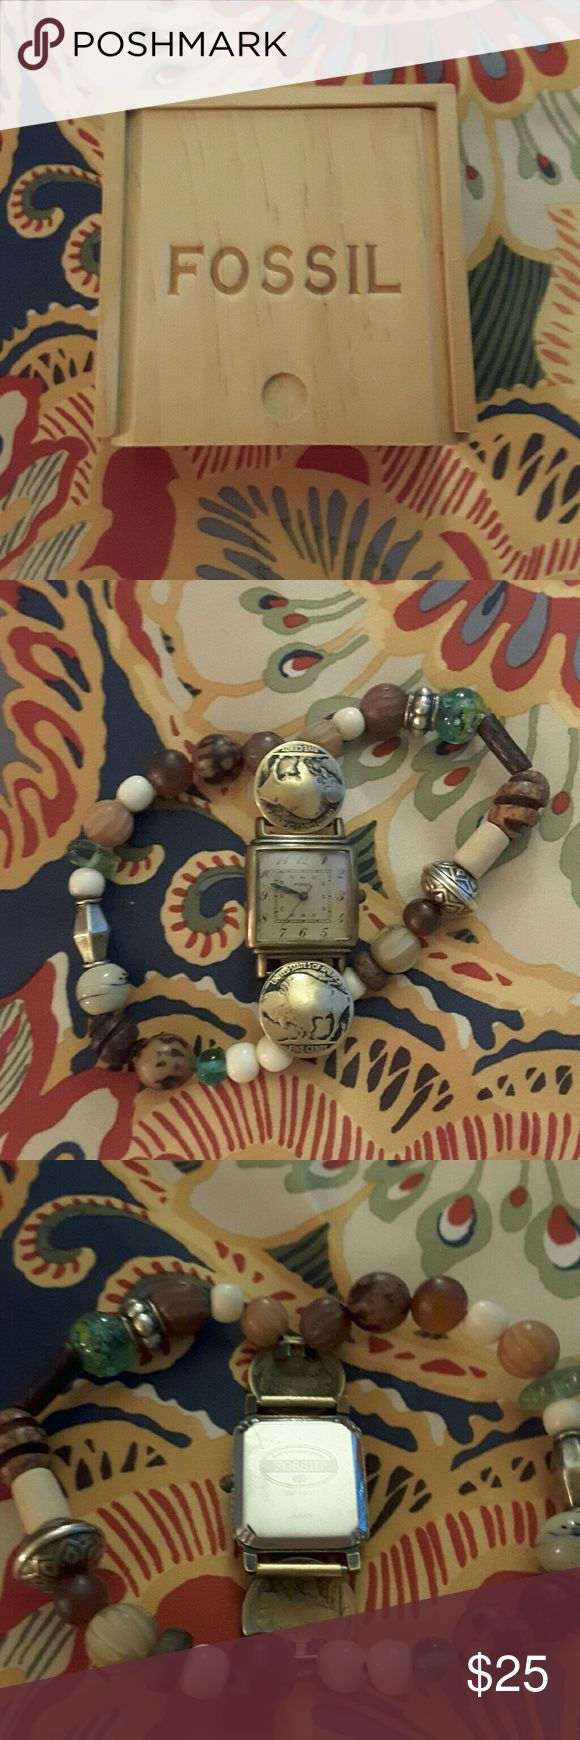 FOSSIL Indian Head watch New battery installed,all ready for you to own this lovely watch with natural stone bracelets Fossil Accessories Watches